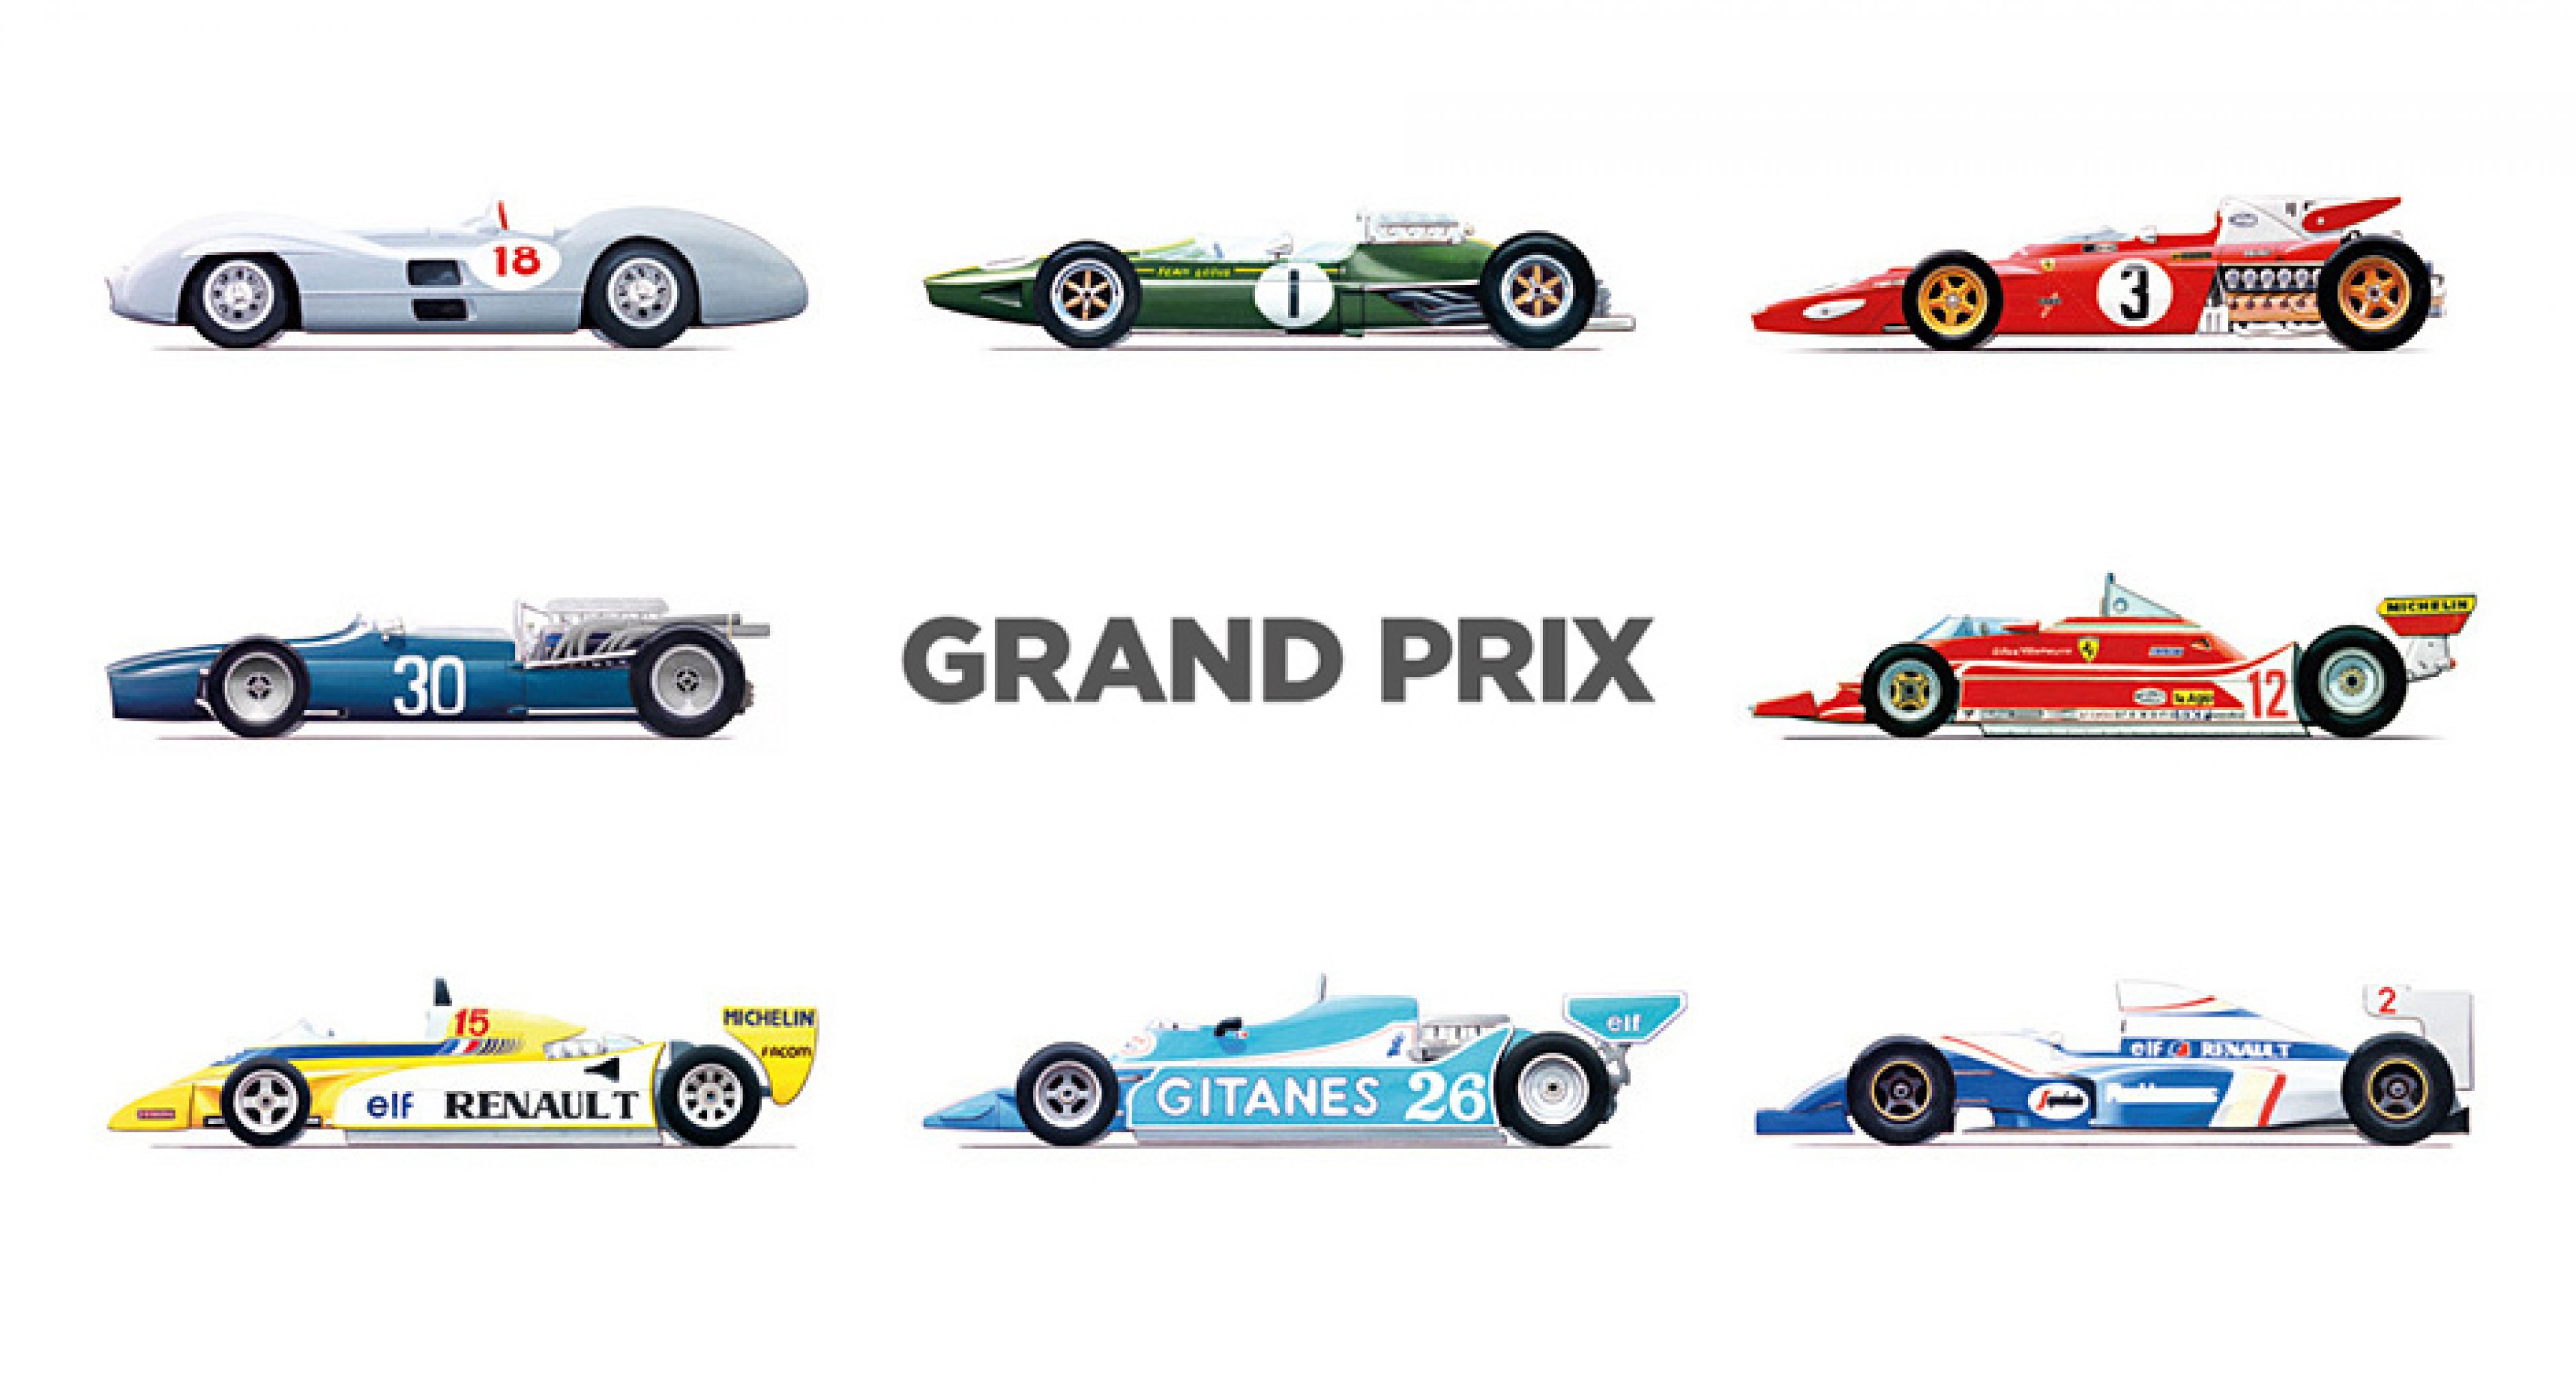 Grand Prix – The Formula One World Championship Single-Seaters